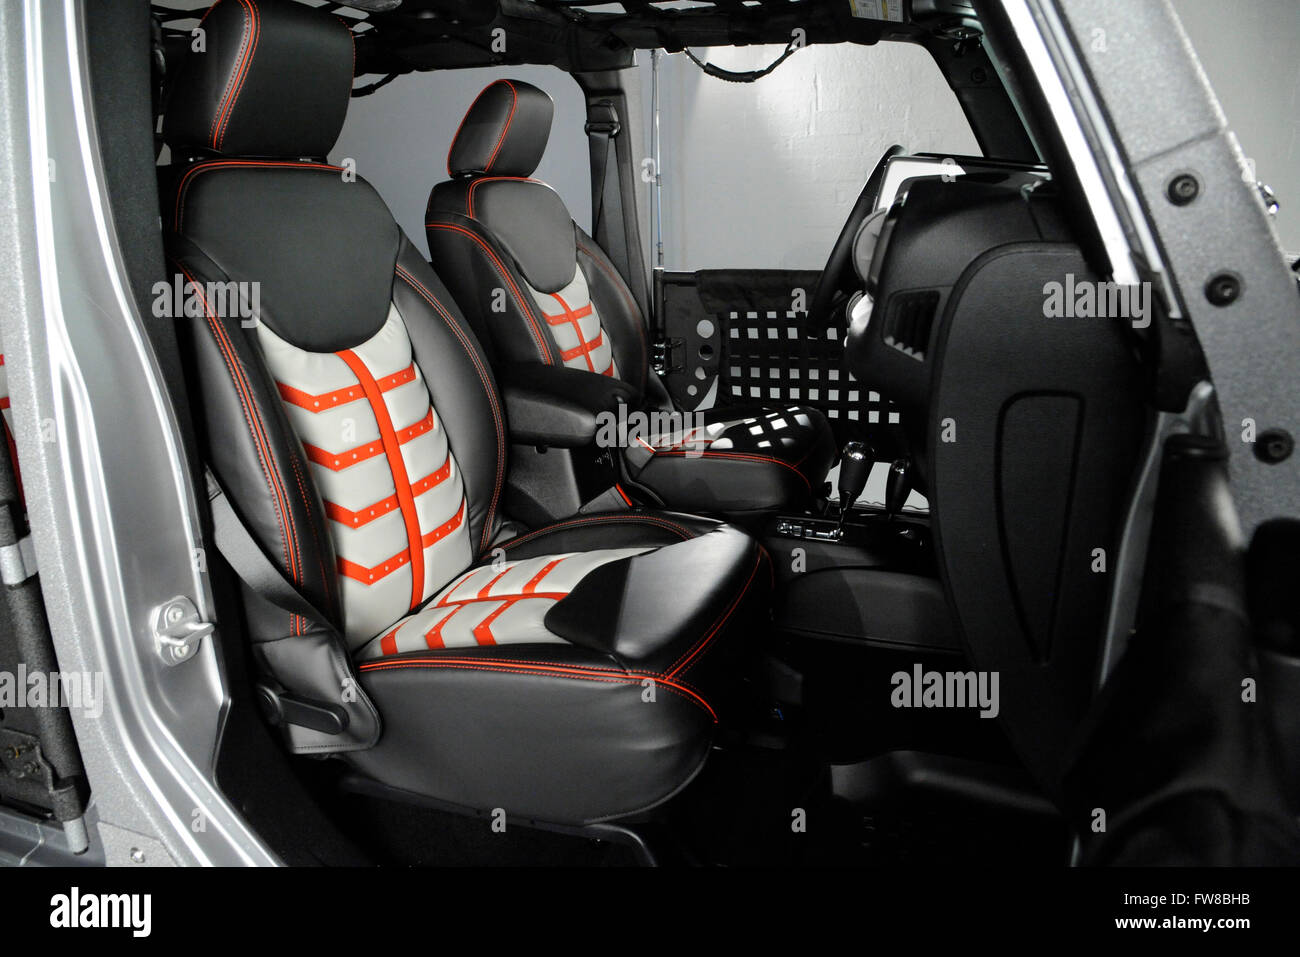 April 1 2016 Custom Jeep Wrangler With Custom Doors And Leather Stock Photo Royalty Free